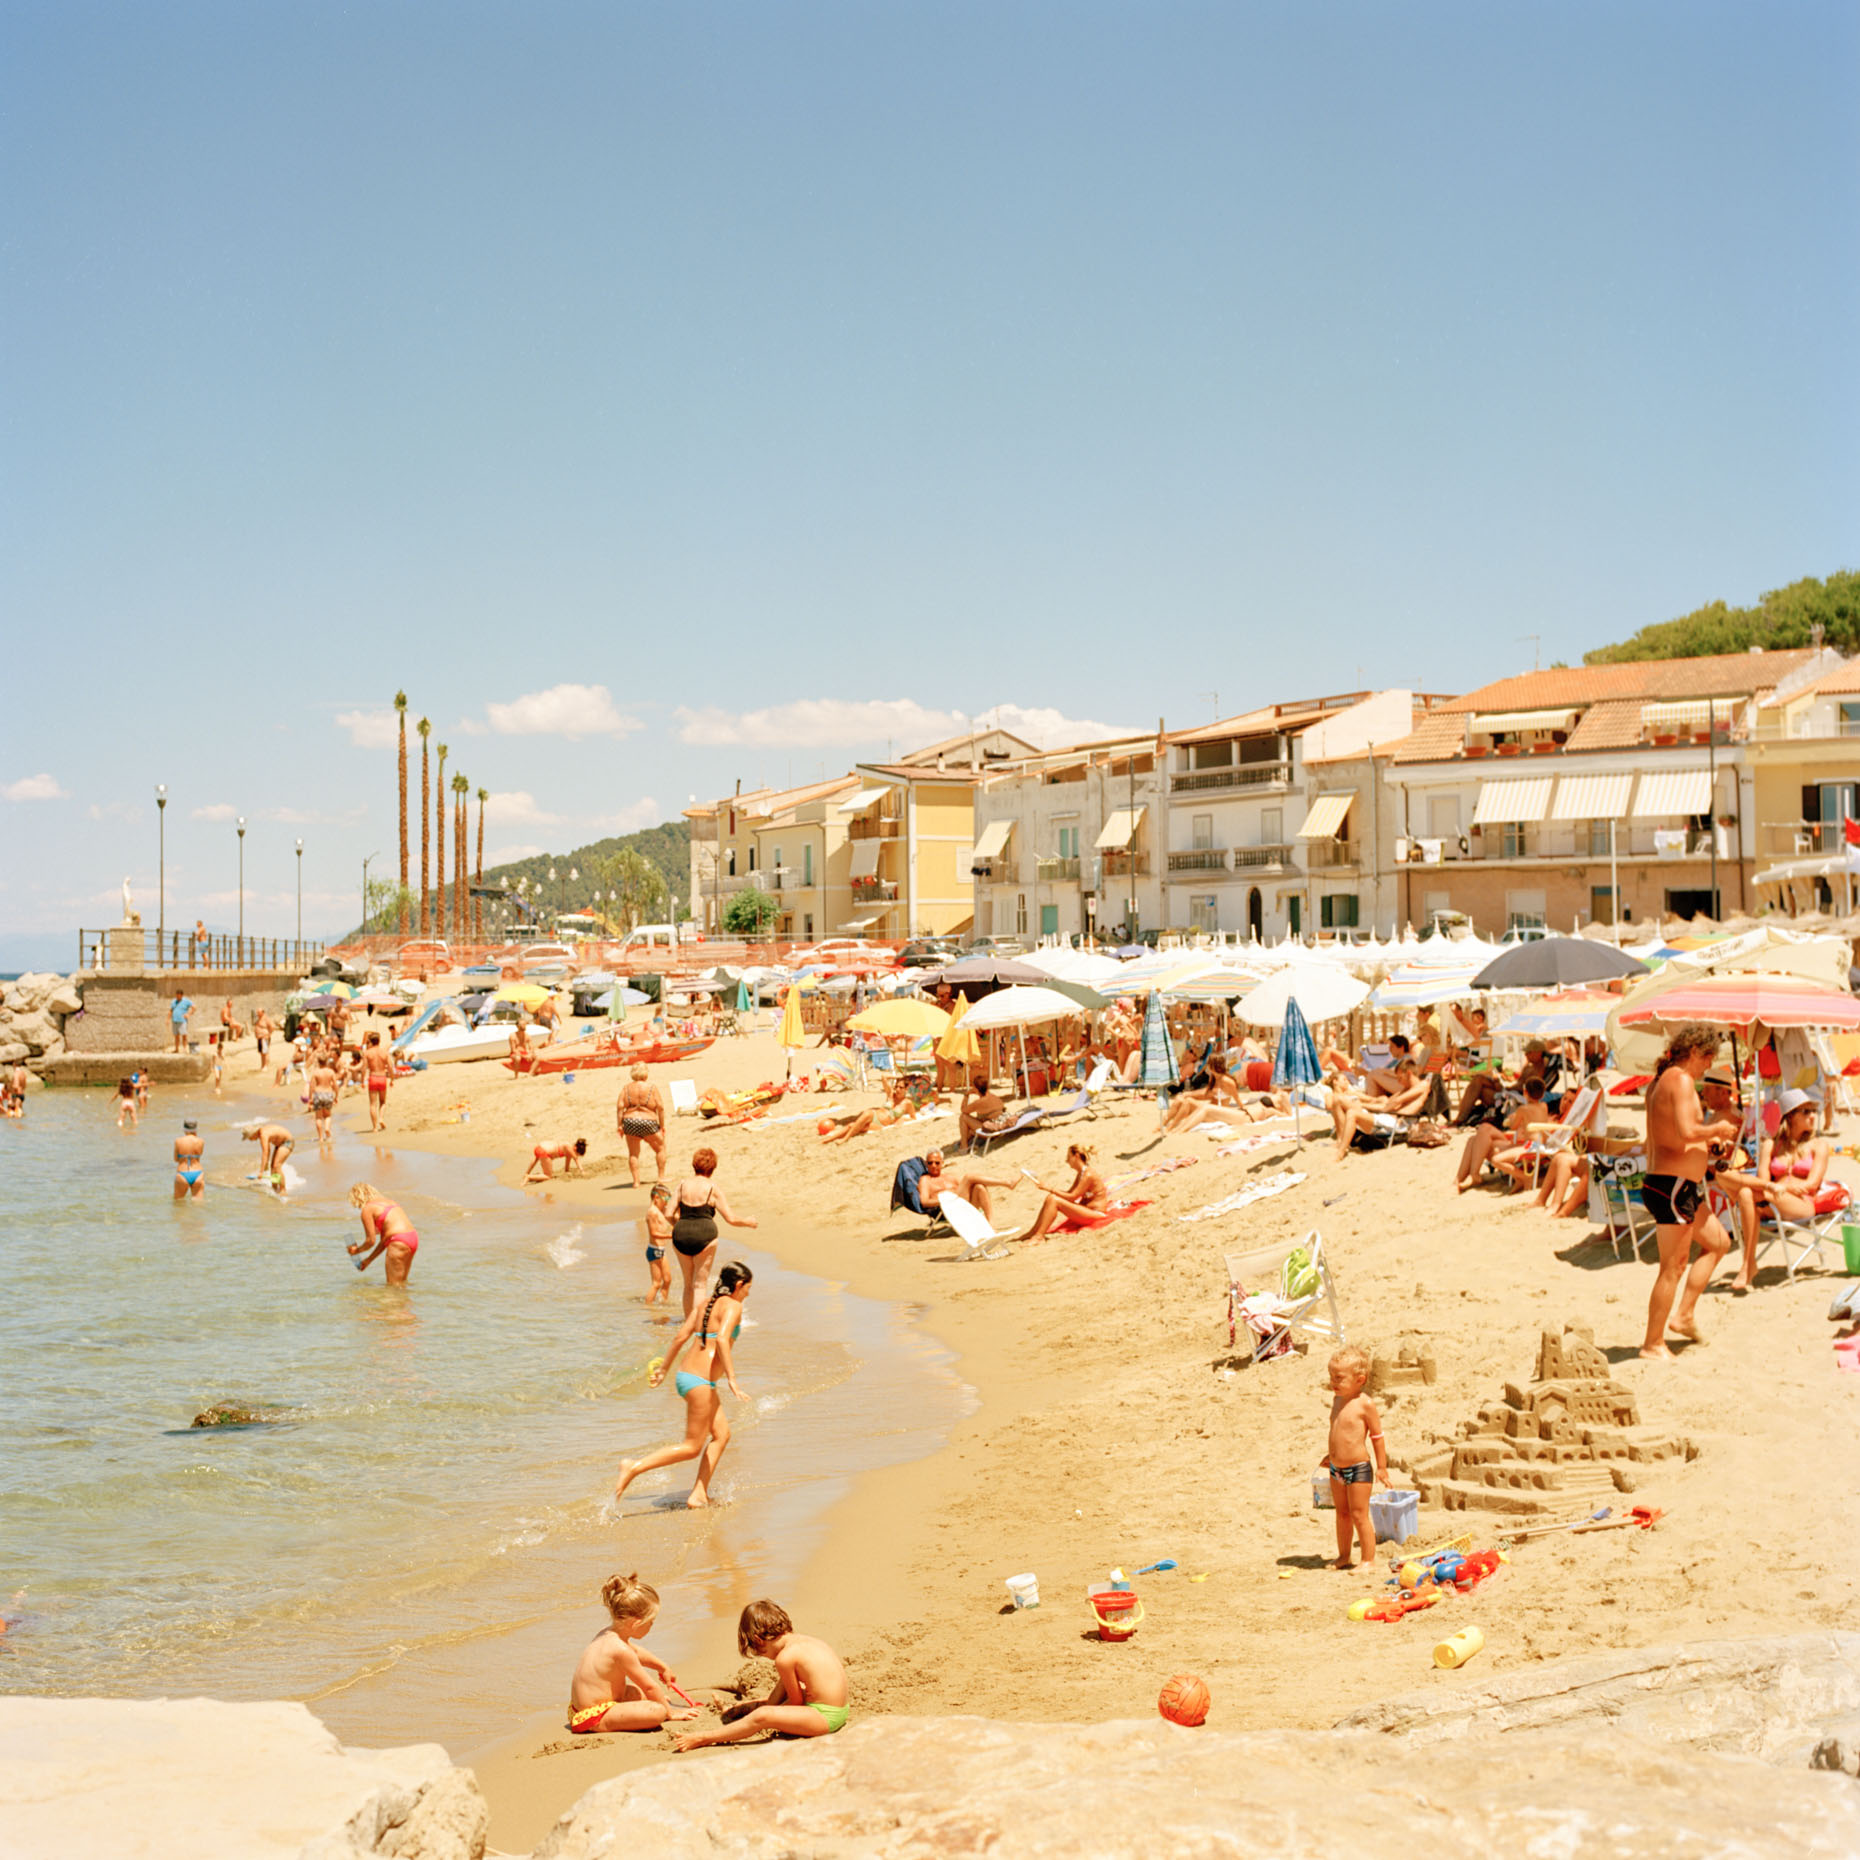 Bathers relax on a hot July in santa maria di castellabate, Italy, 6x6, film, hasselblad, color, ektar